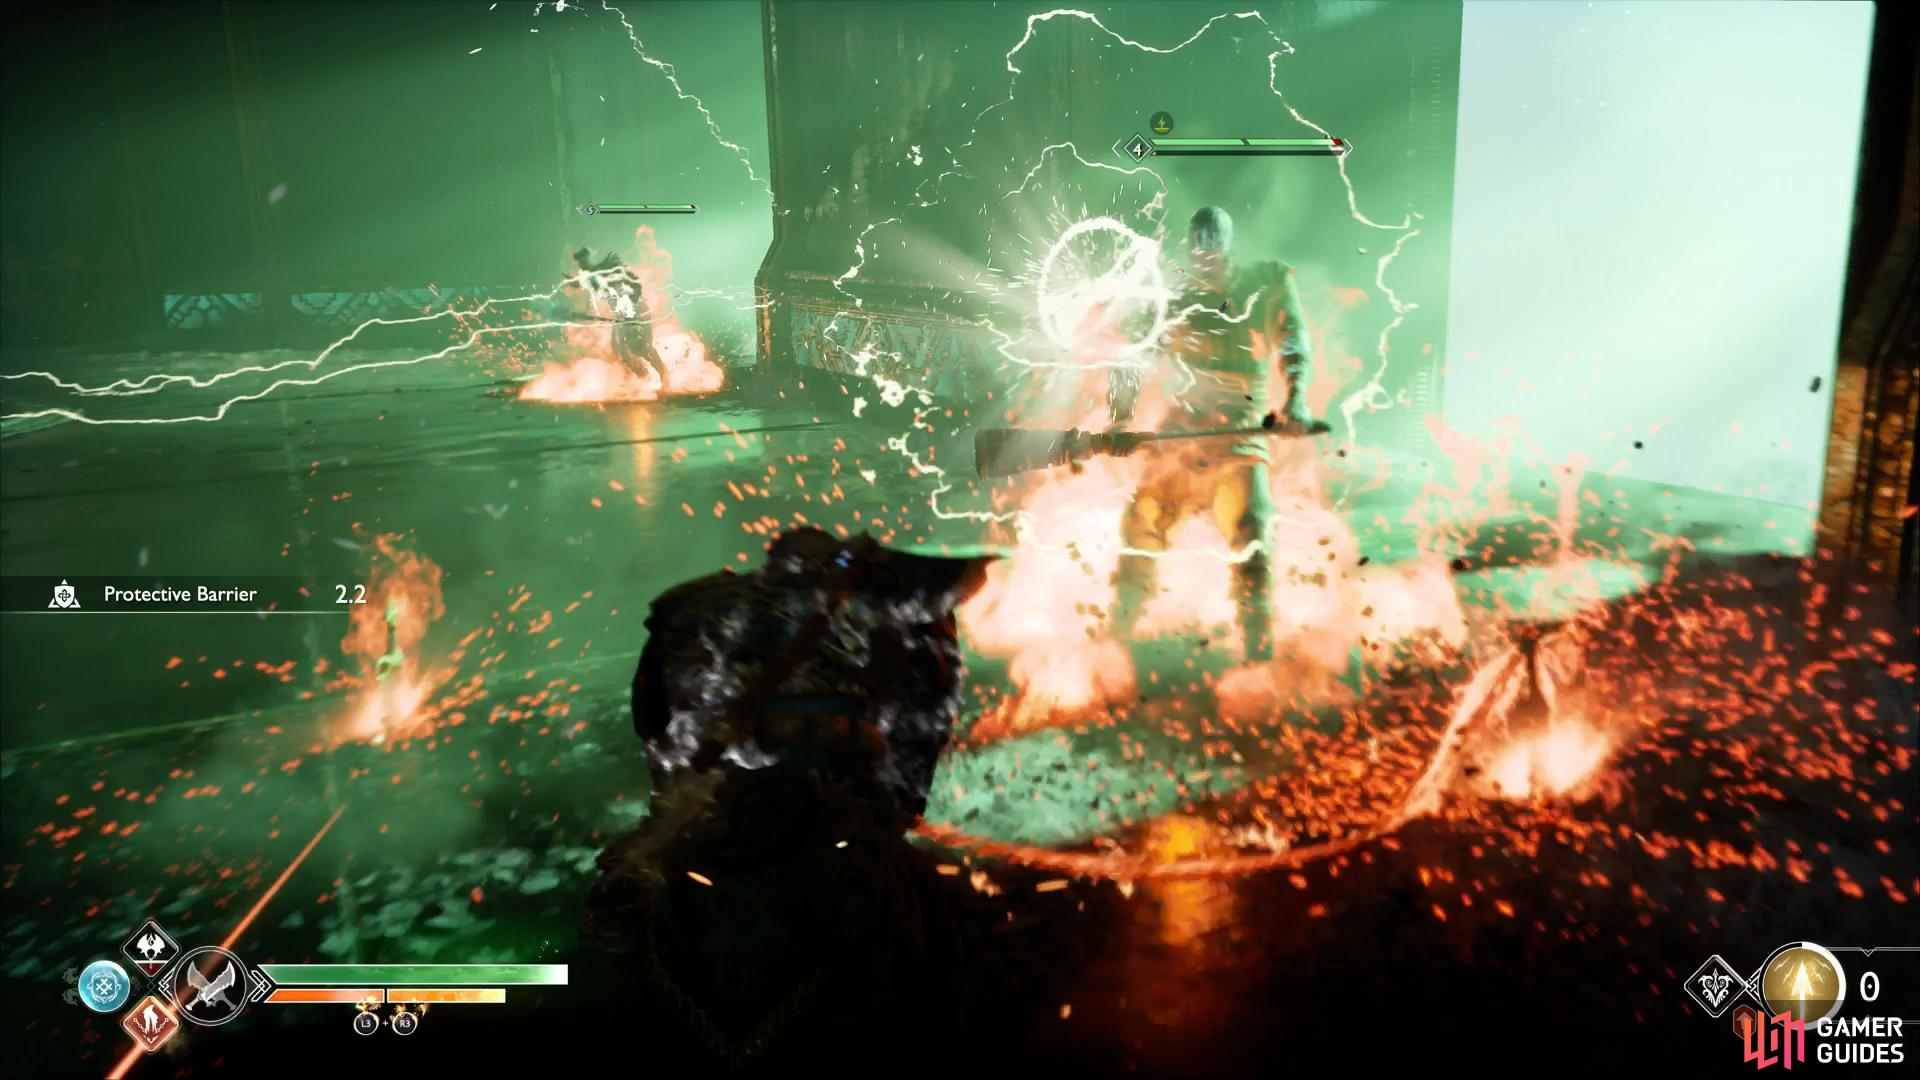 Prometheus Flame is as useful as ever against enemies from Helheim.